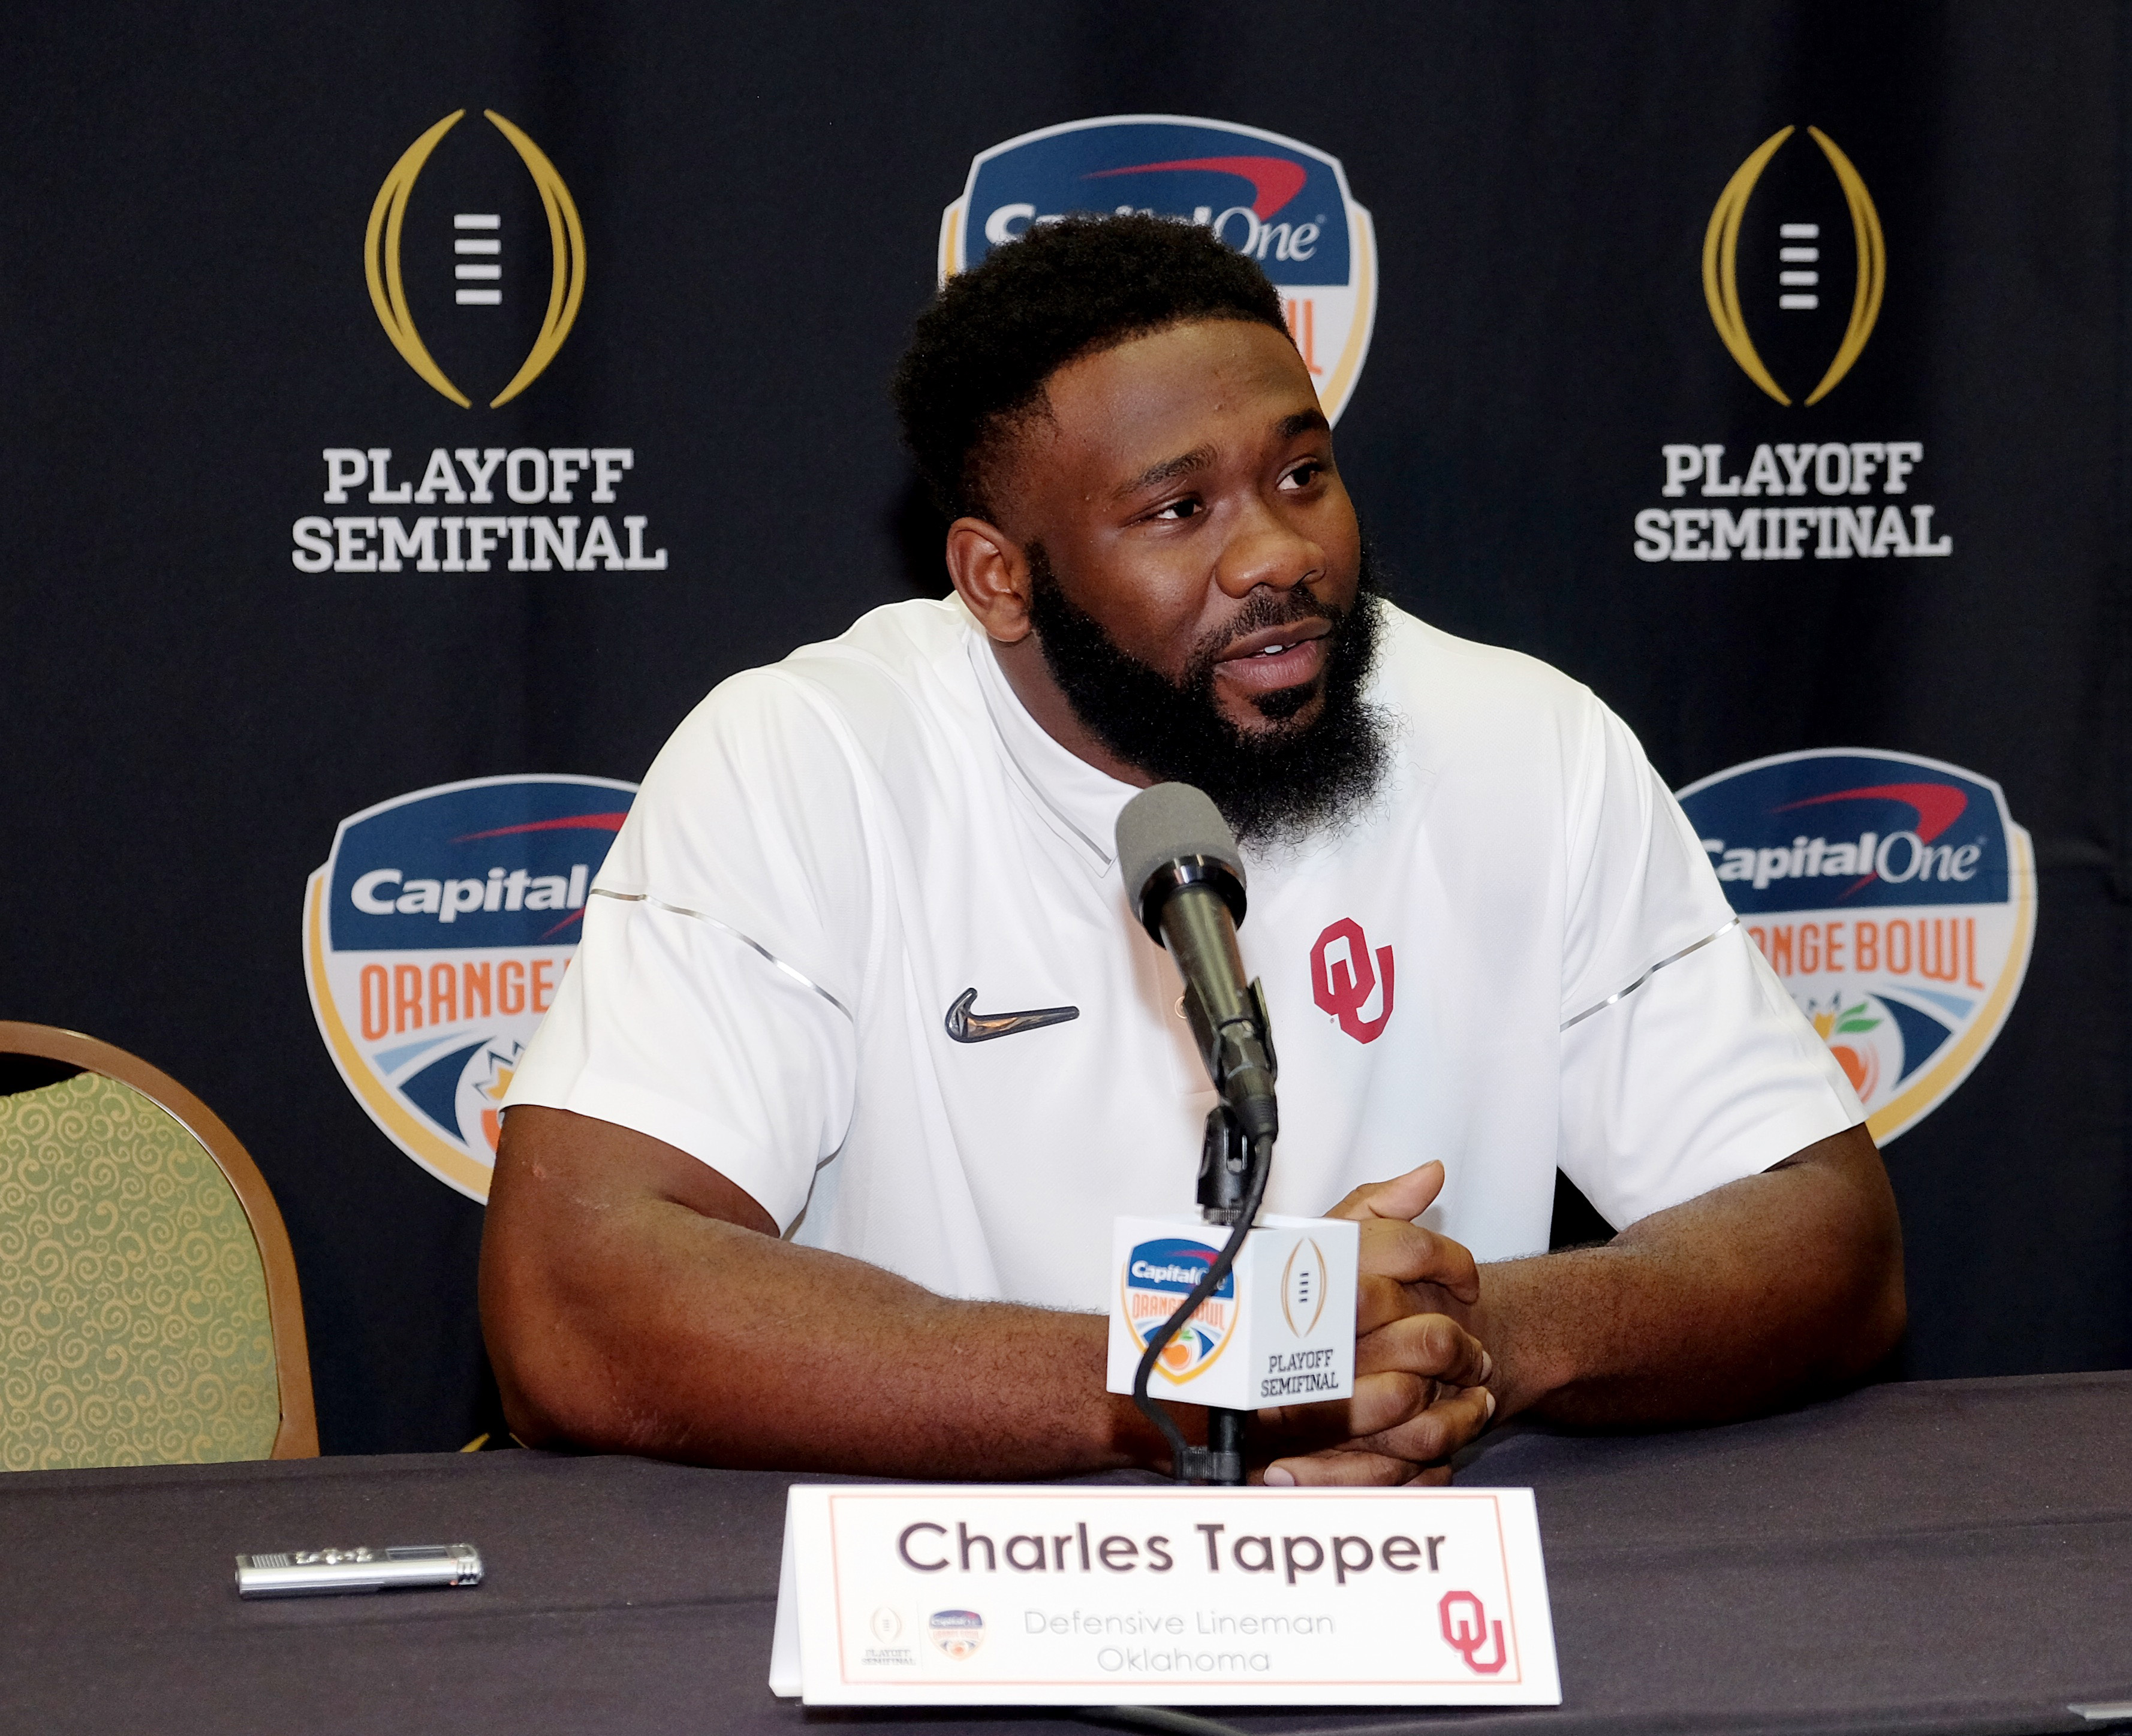 Oklahoma defensive lineman Charles Tapper speaks to the media at a press conference in Fort Lauderdale, Fla., Sunday, Dec. 27, 2015. Oklahoma will play Clemson in the Orange Bowl on New Year's Eve. (AP Photo/Gaston De Cardenas)